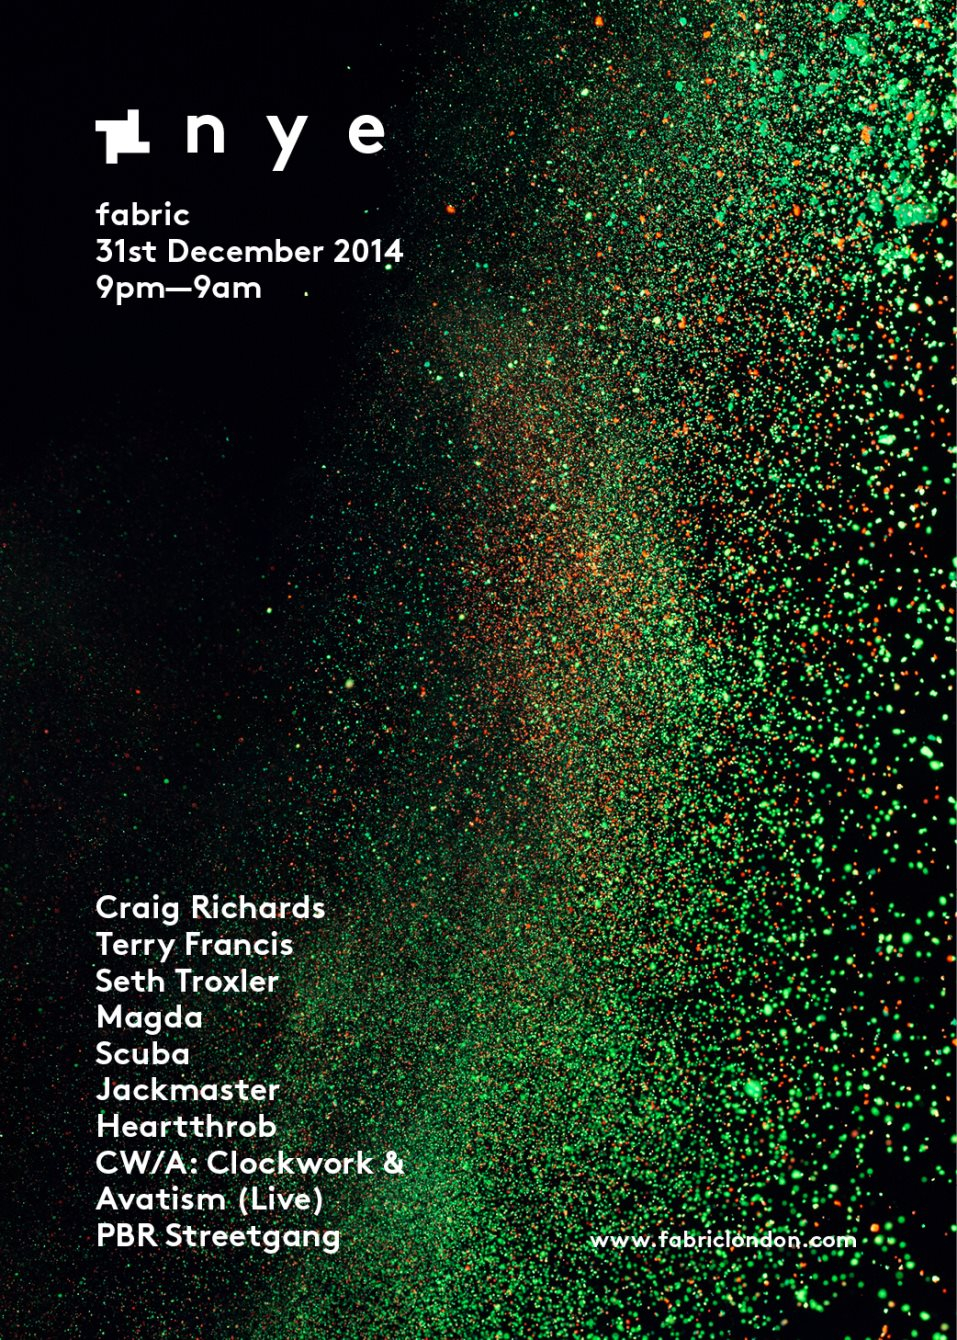 Page 1 | 31/12/2014 | London | Fabric NYE 2014 with Seth Troxler, Scuba, Jackmaster, CW/A... Published by DjMaverix on Friday, 12 December 2014 in Clubs and Discoteque (Events)